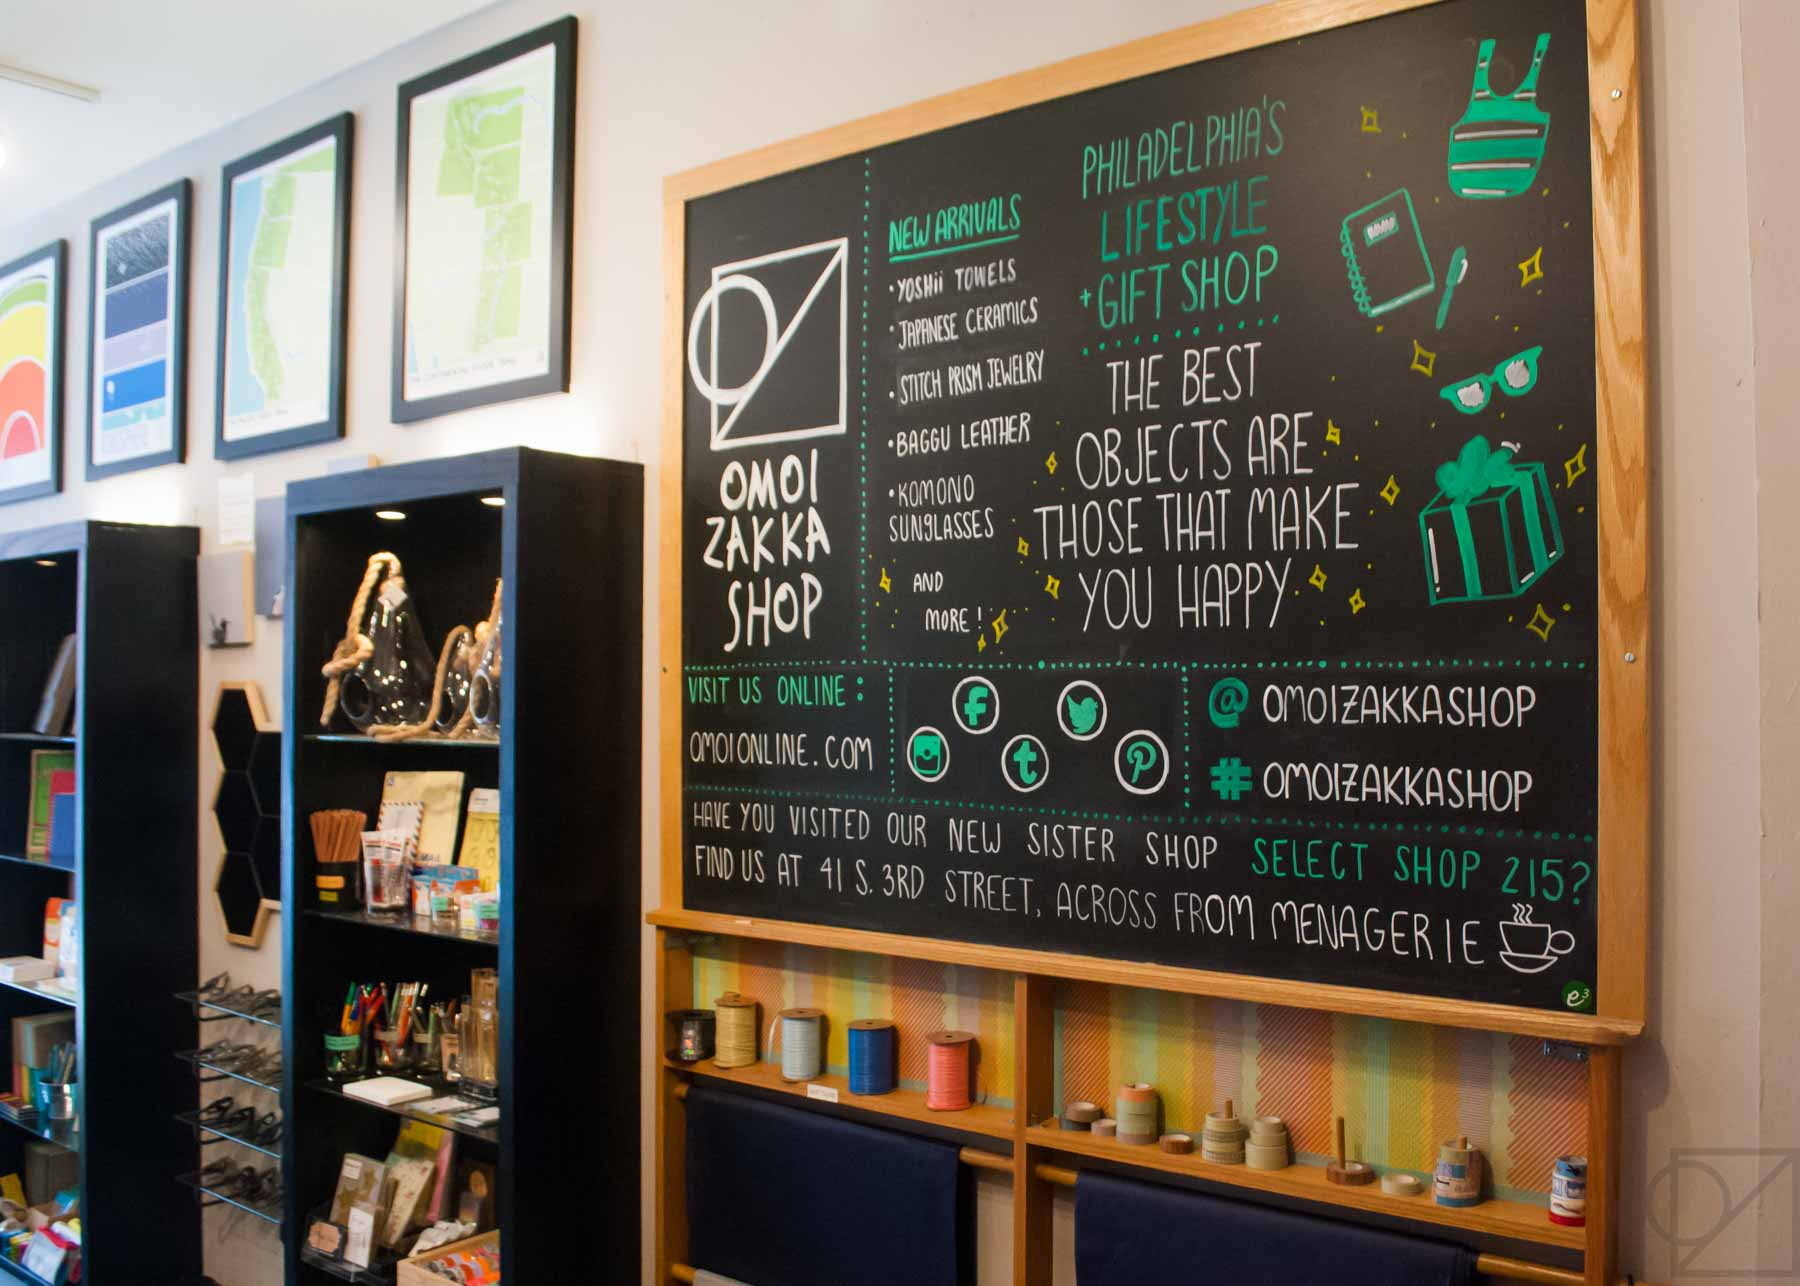 The chalkboard working hard to promote our socials, new arrivals, backstory, and shop announcements.